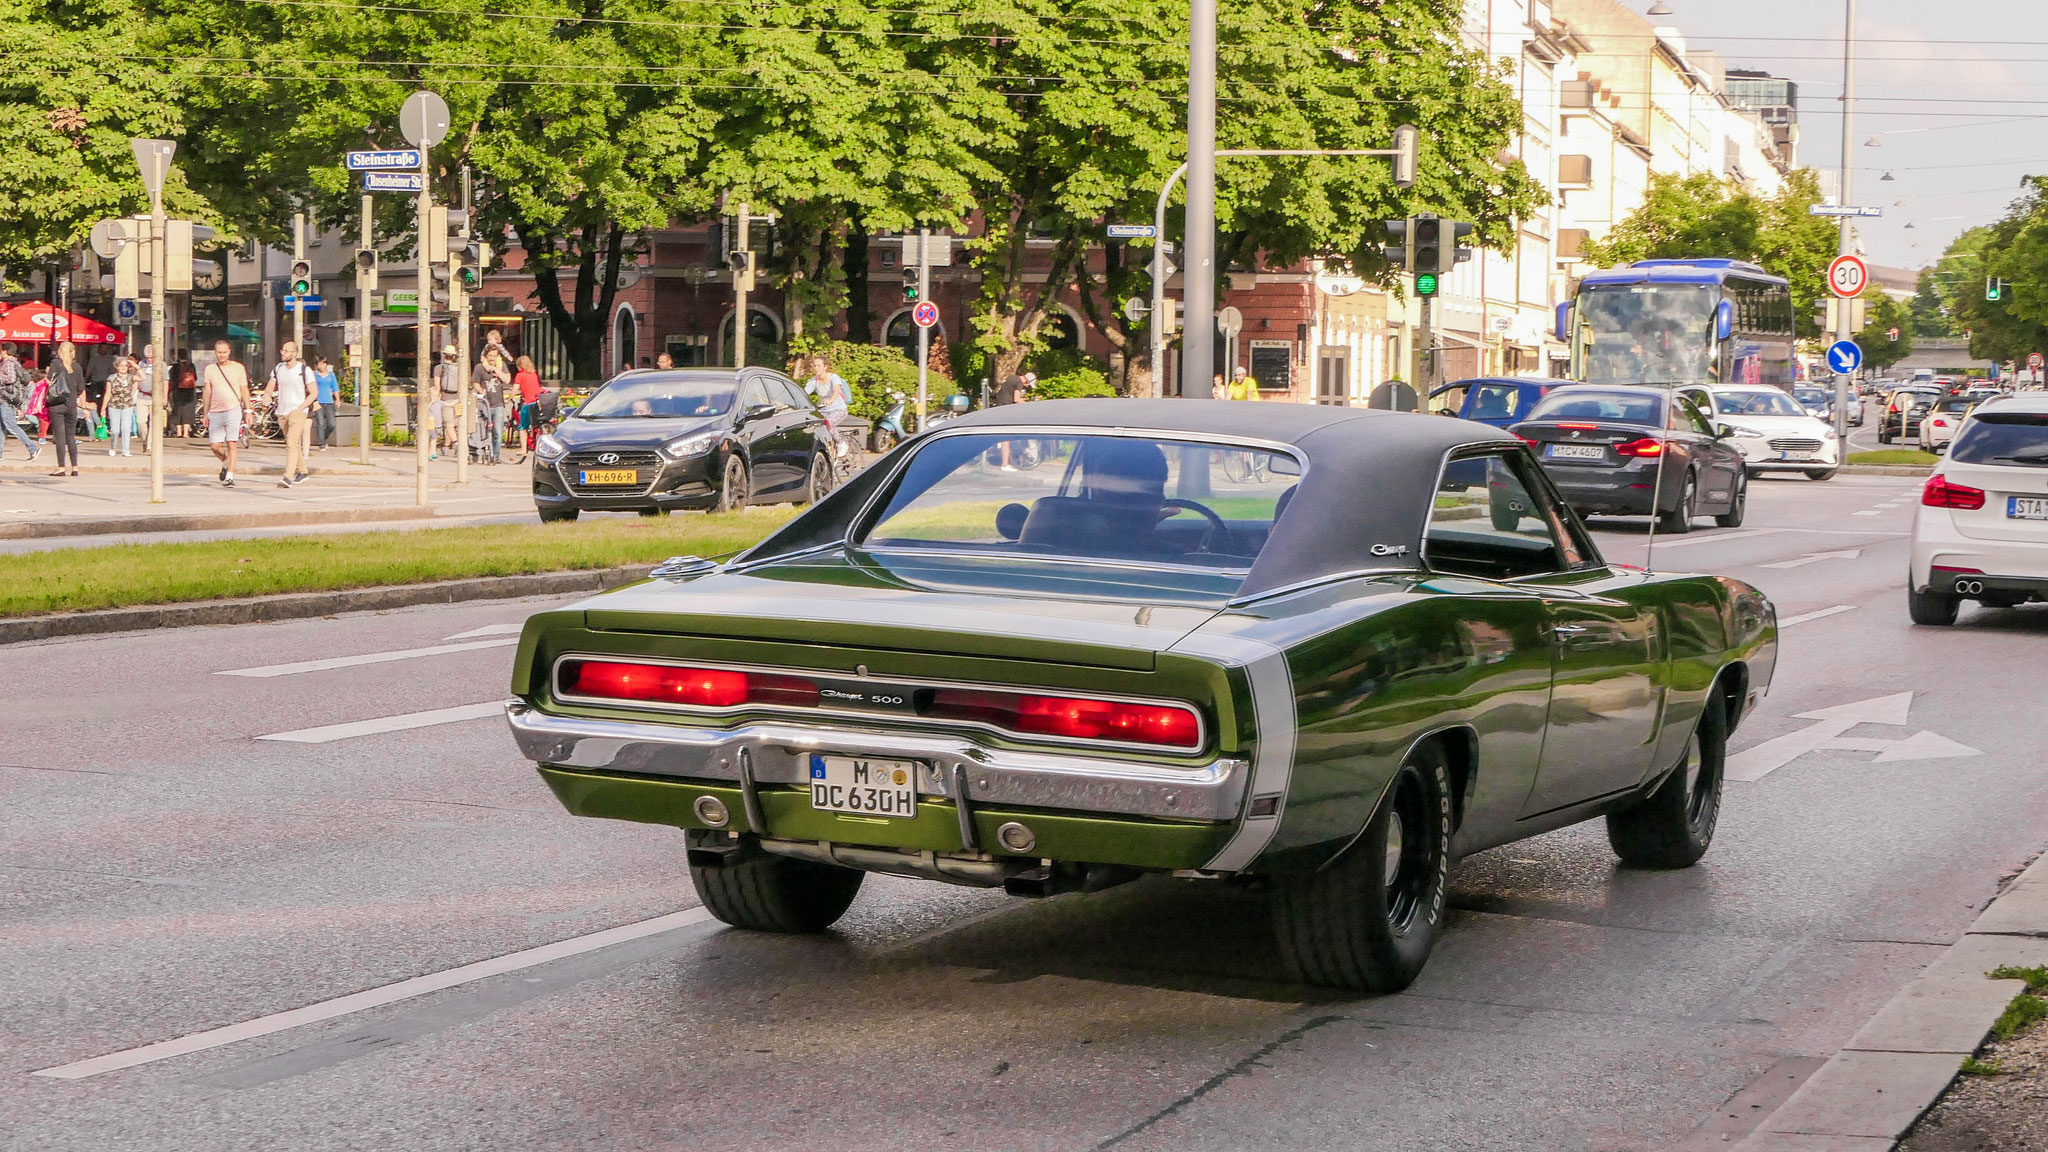 Dodge Charger 500 - M-DC-630H